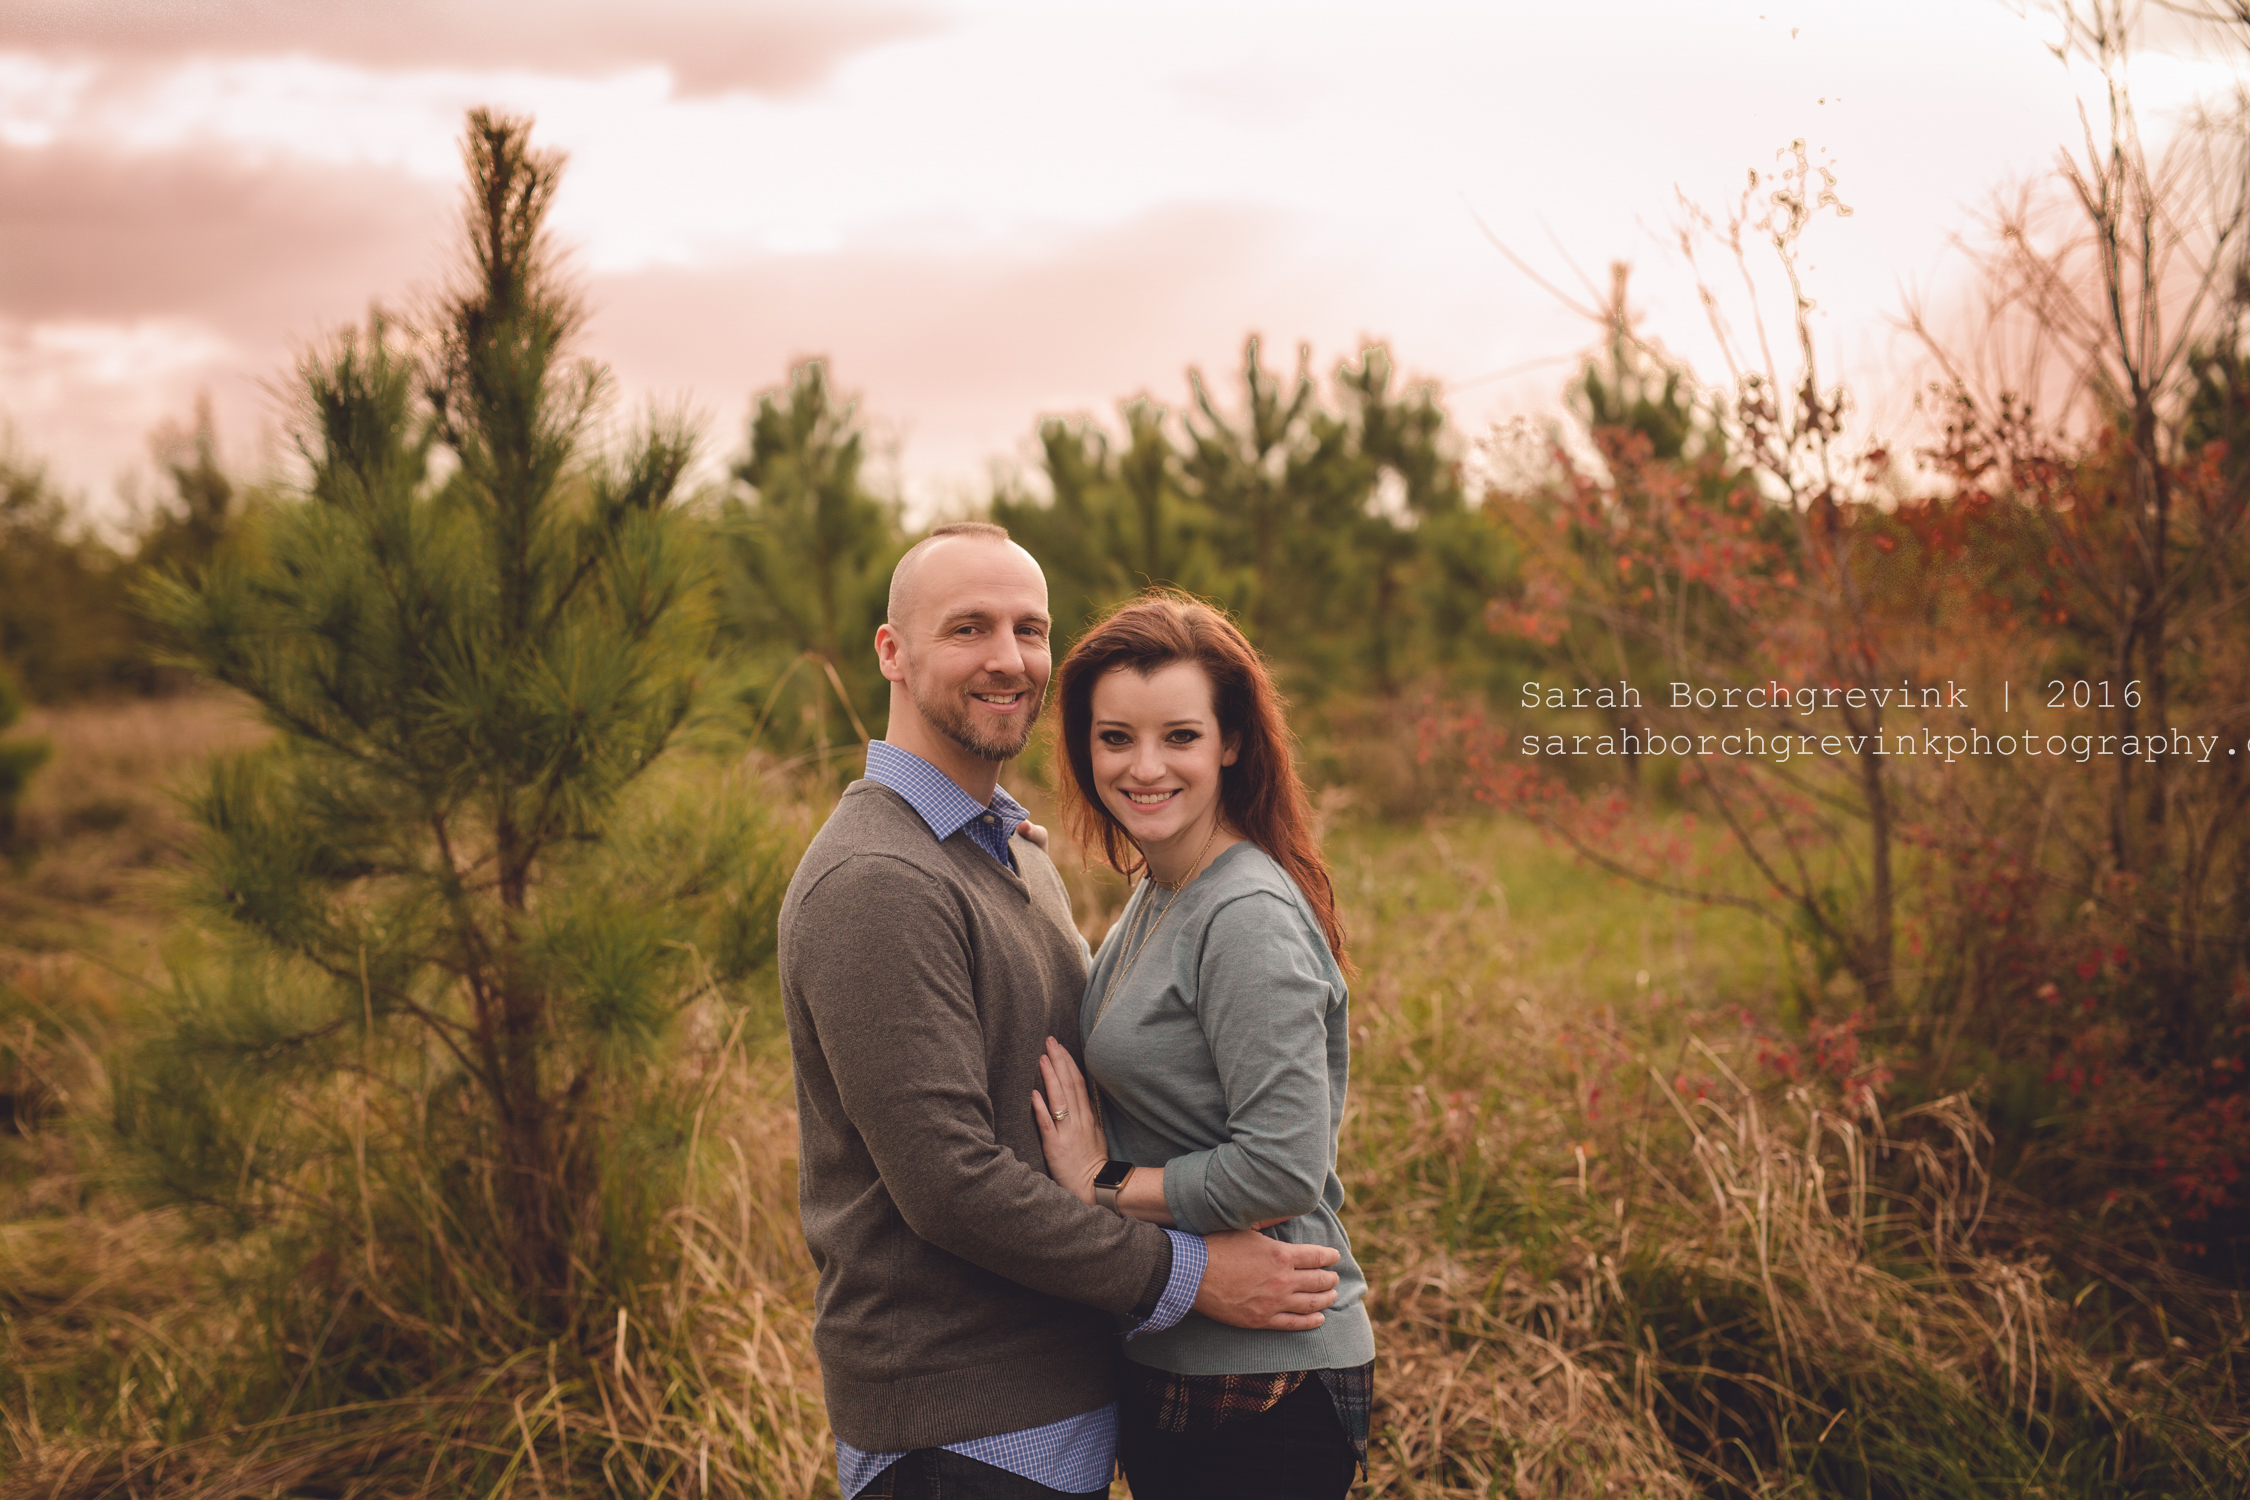 Family & Baby Photographer | The Woodlands & North Houston TX Photography